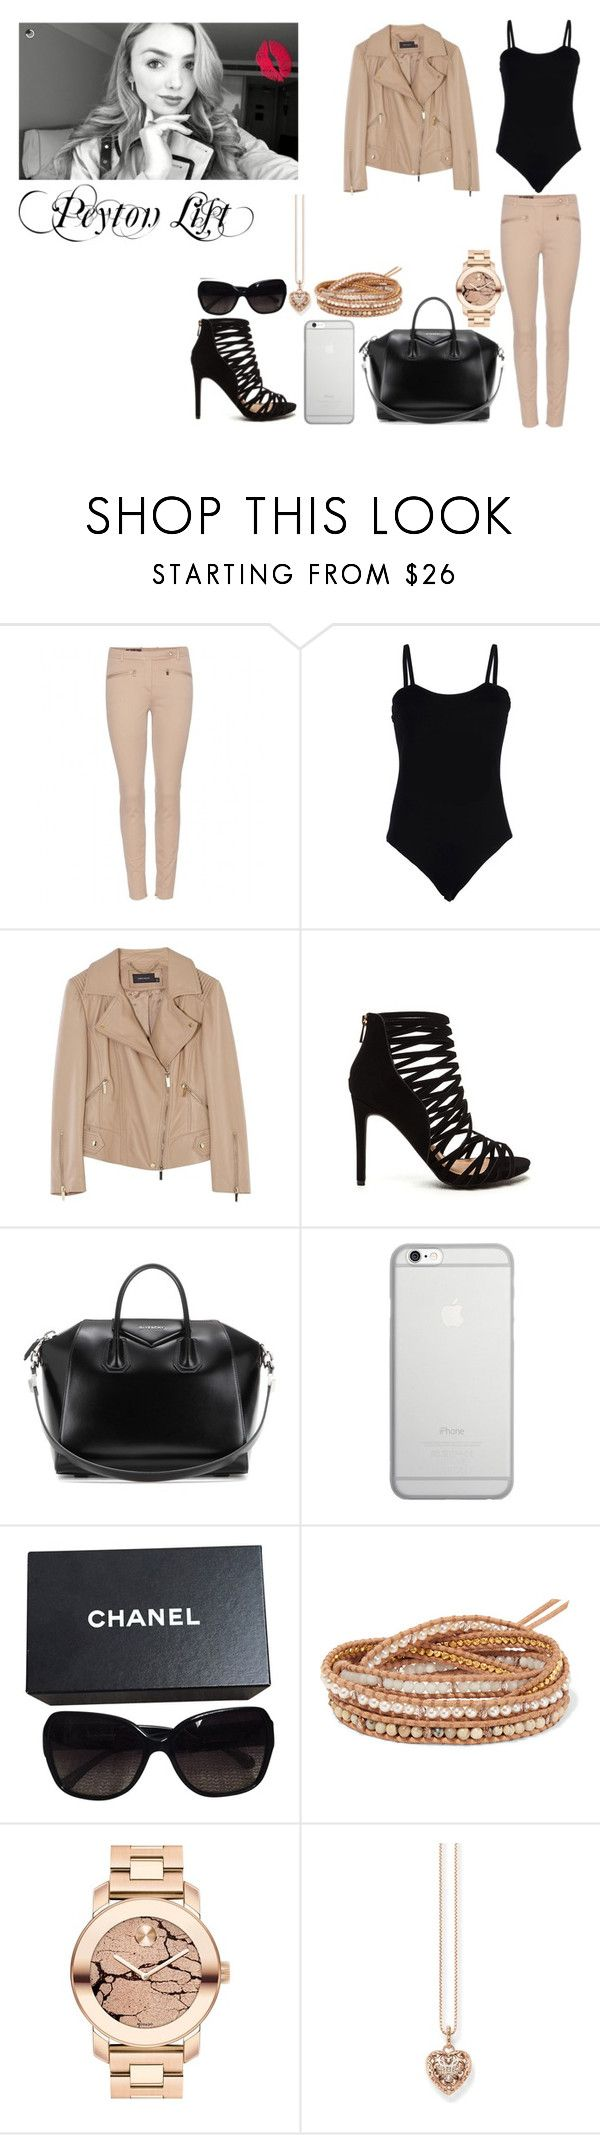 """""""Peyton List"""" by ludya ❤ liked on Polyvore featuring Loro Piana, Baguette....., Karen Millen, Givenchy, Native Union, Chanel, Chan Luu, Movado and Thomas Sabo"""